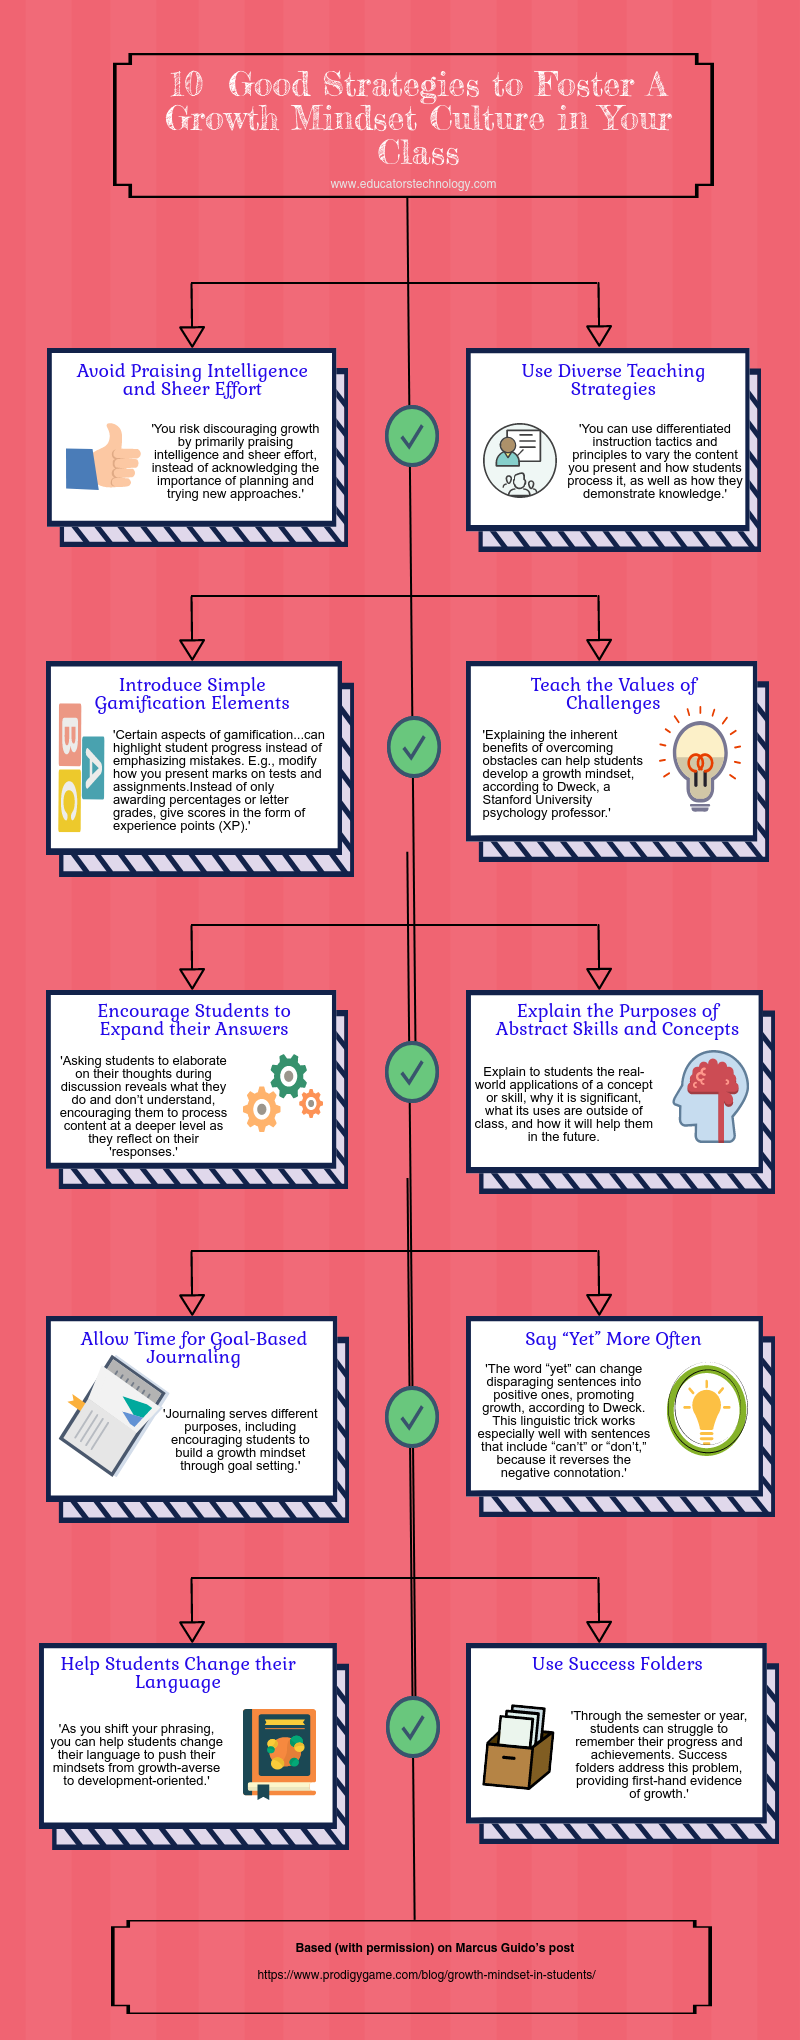 10 Practical Strategies to Foster A Growth Mindset Culture in Your Class